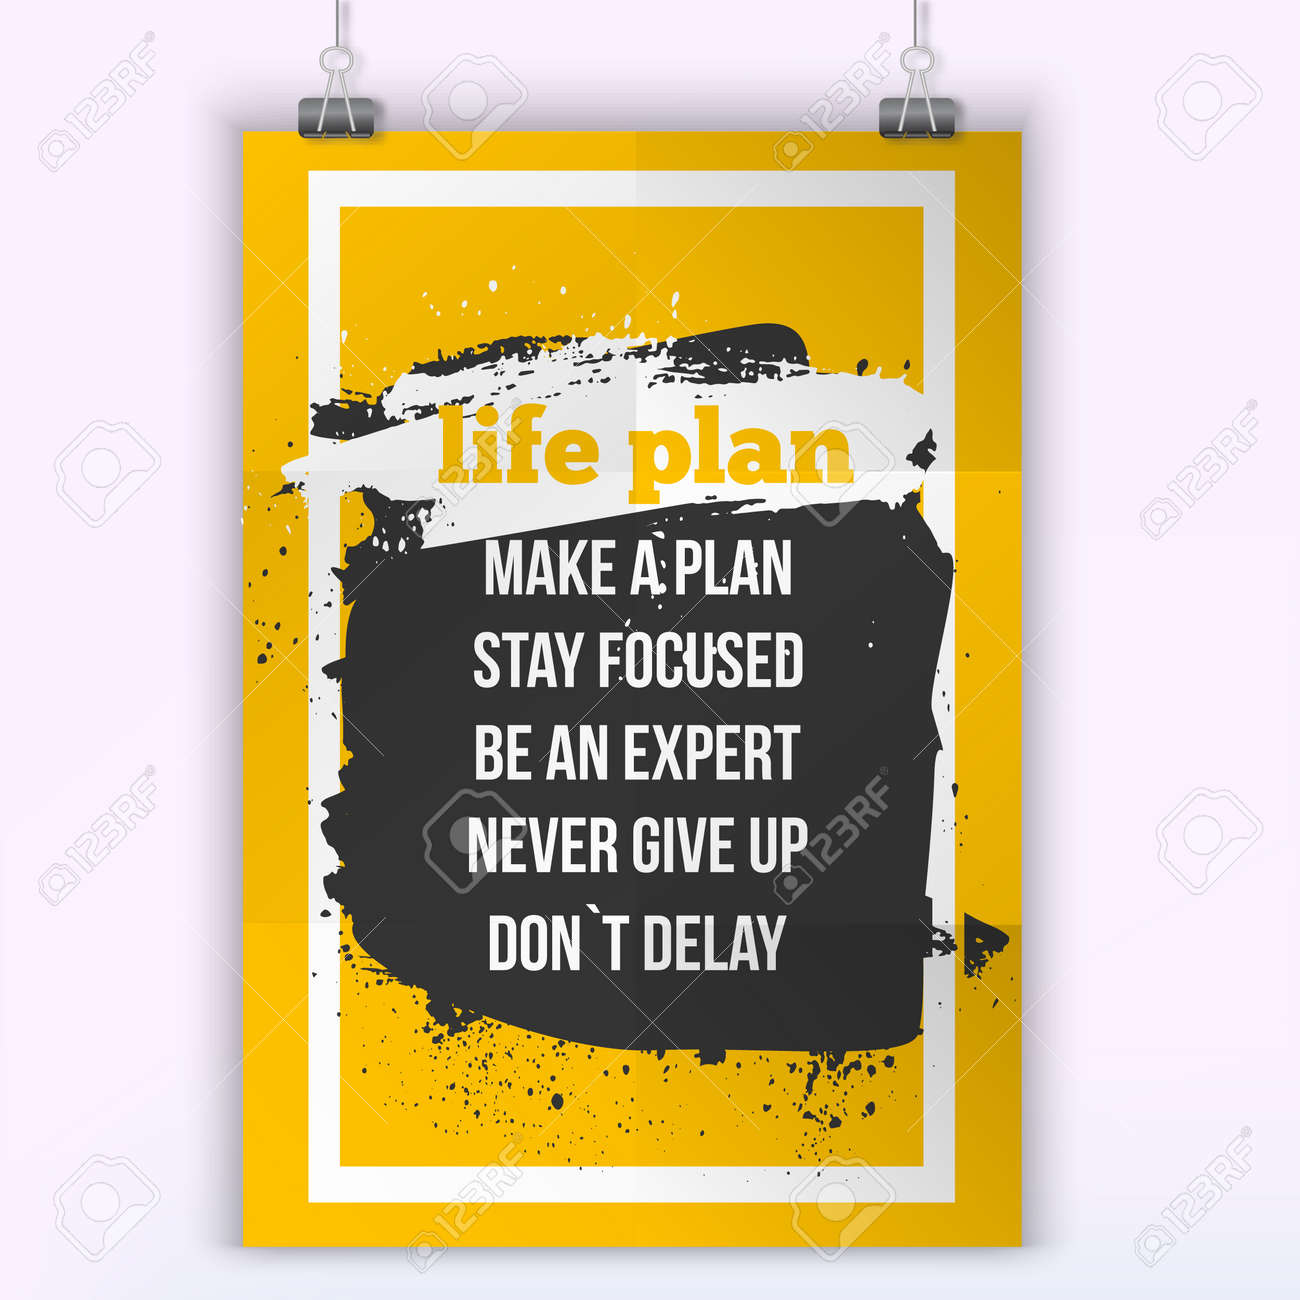 Life Plan Quote Inspirational Concept Image Poster For Wall Art ...